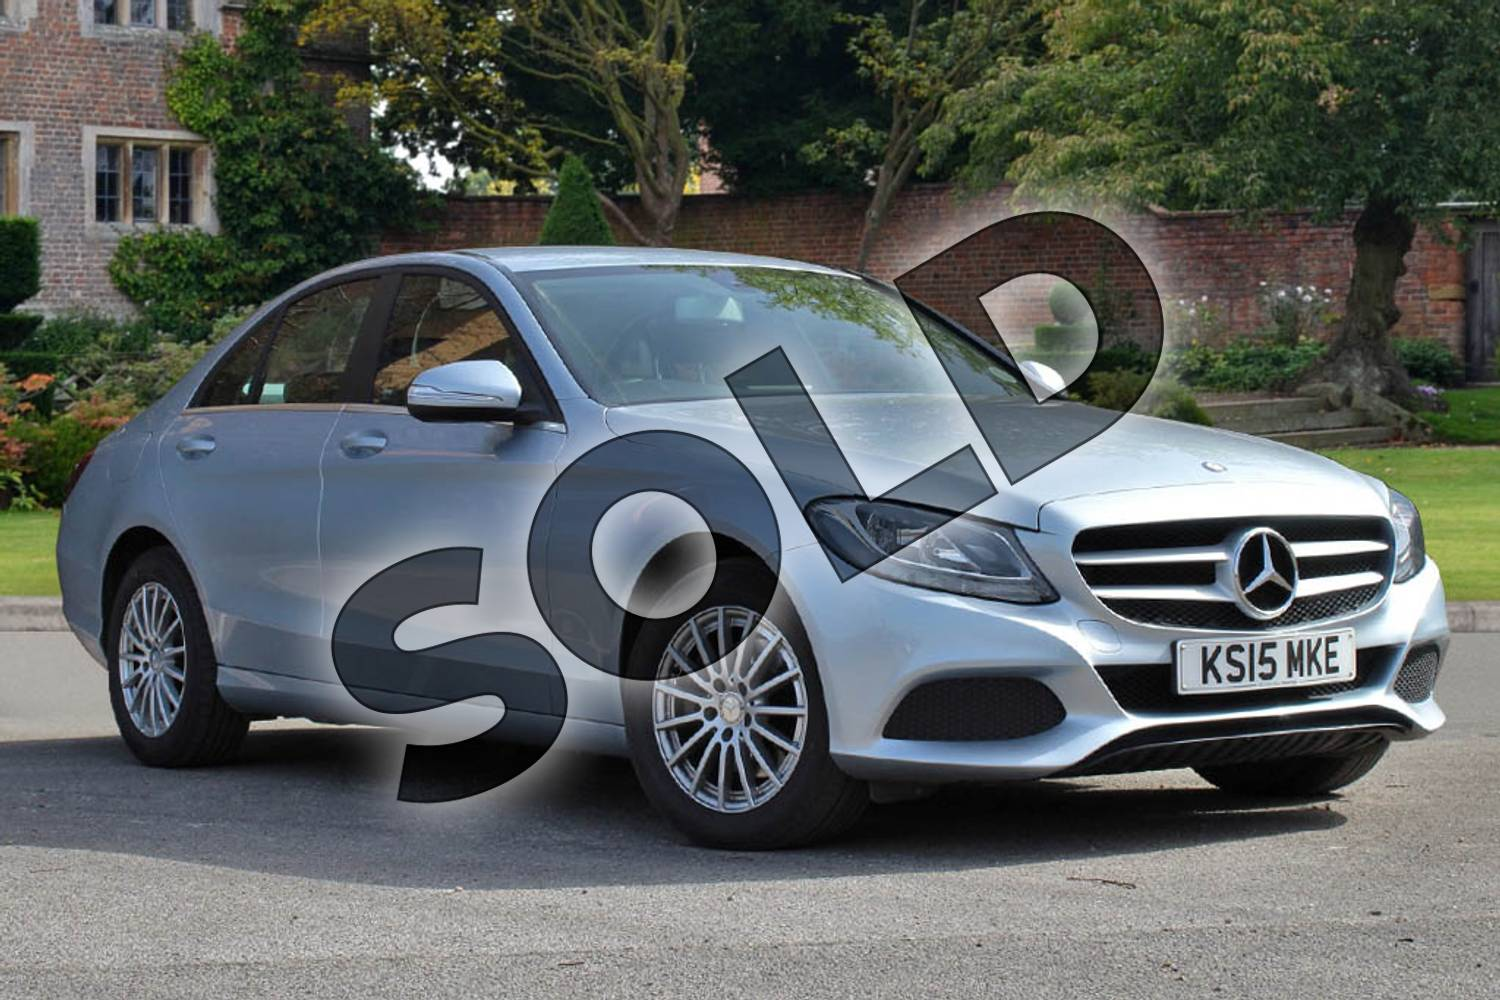 2015 Mercedes-Benz C Class Diesel Saloon C220 BlueTEC SE Executive 4dr Auto in Diamond Silver Metallic at Mercedes-Benz of Lincoln